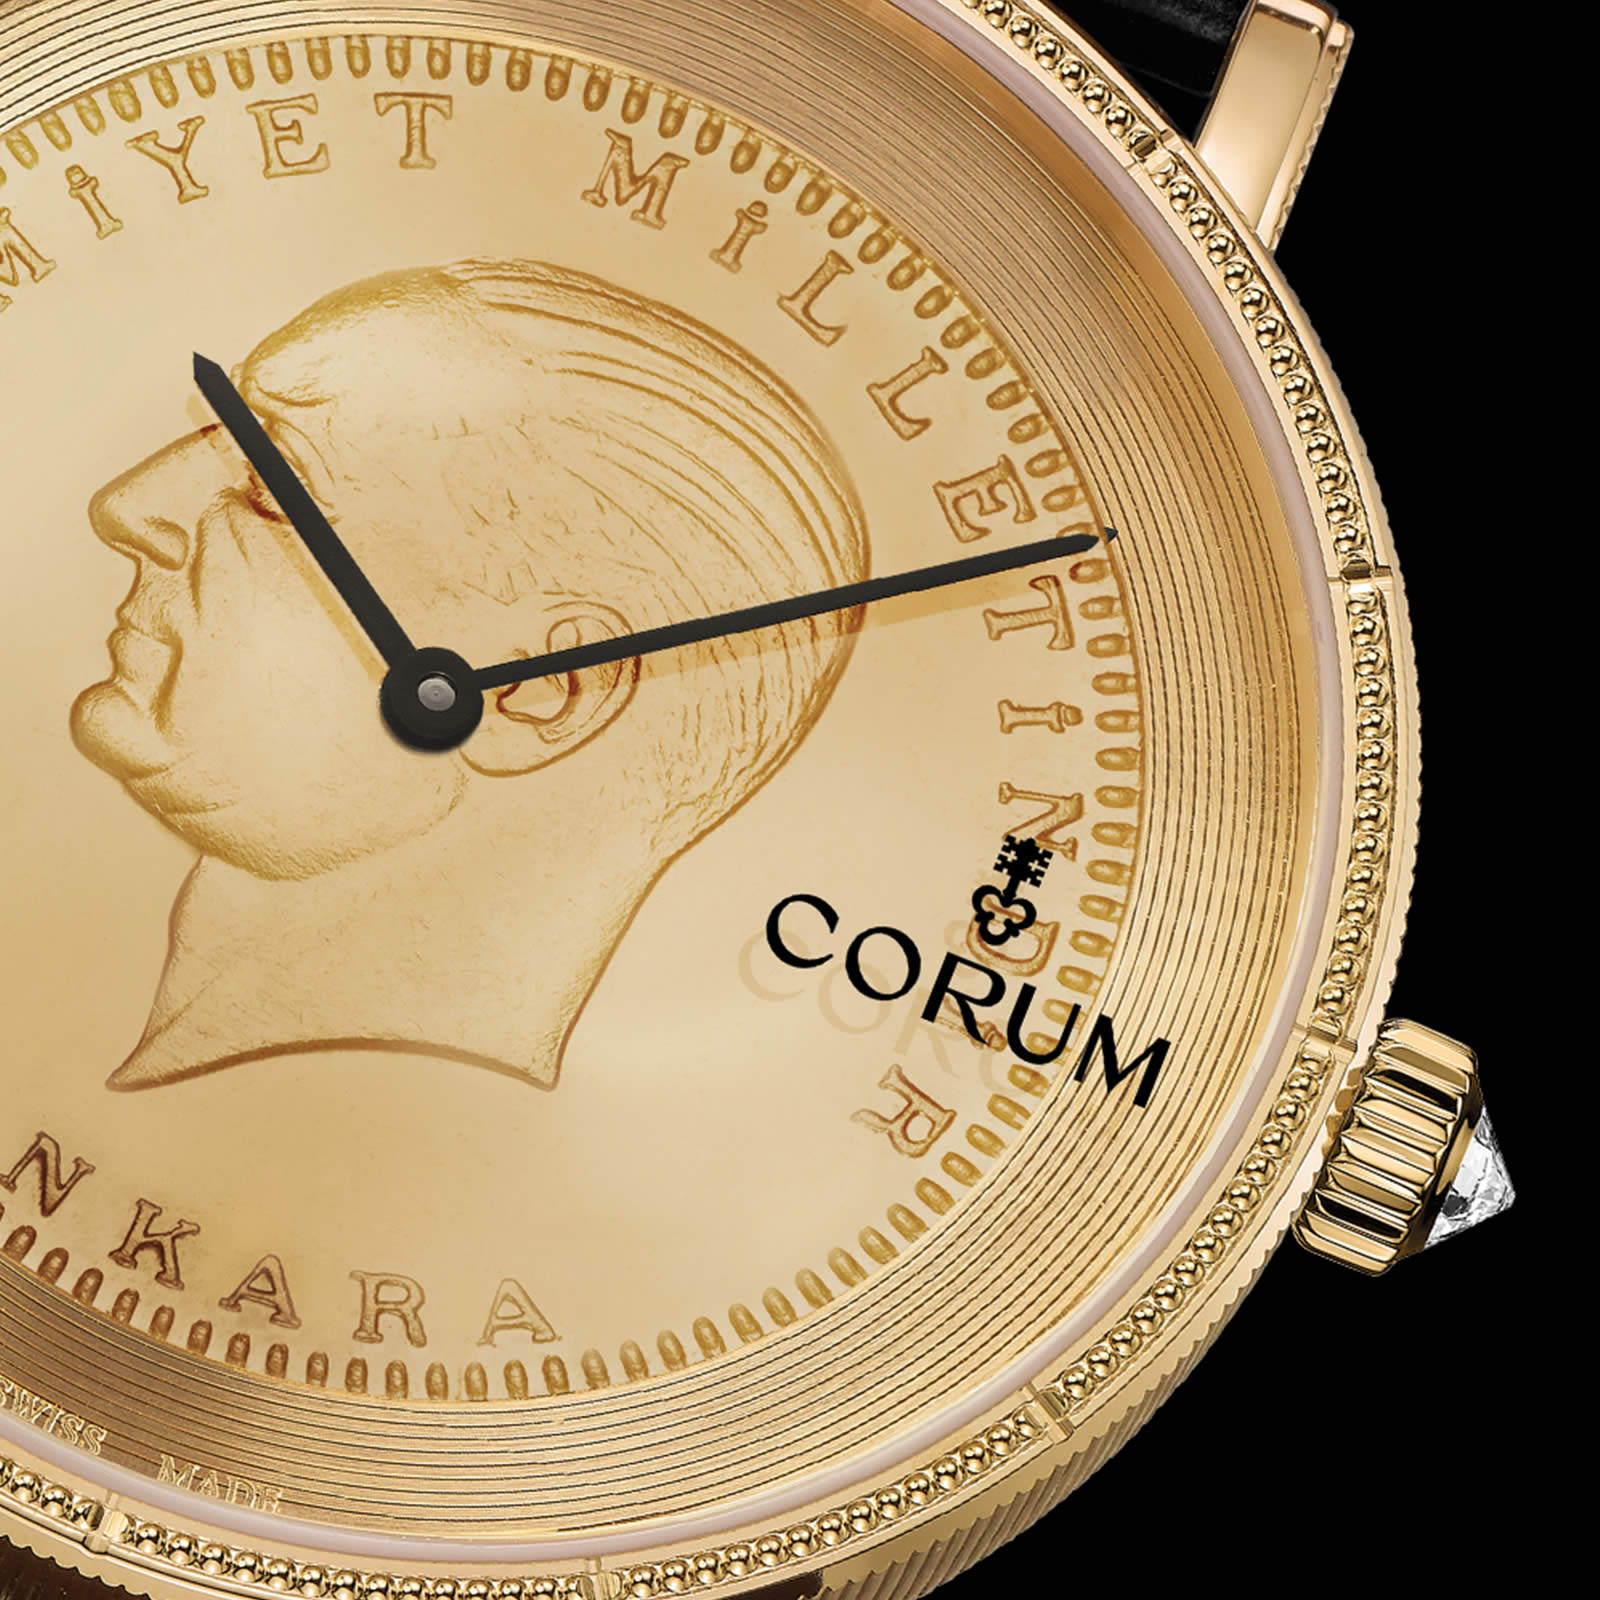 corum-heritage-artisans-coin-watch-ata-limited-edition-2-.jpg